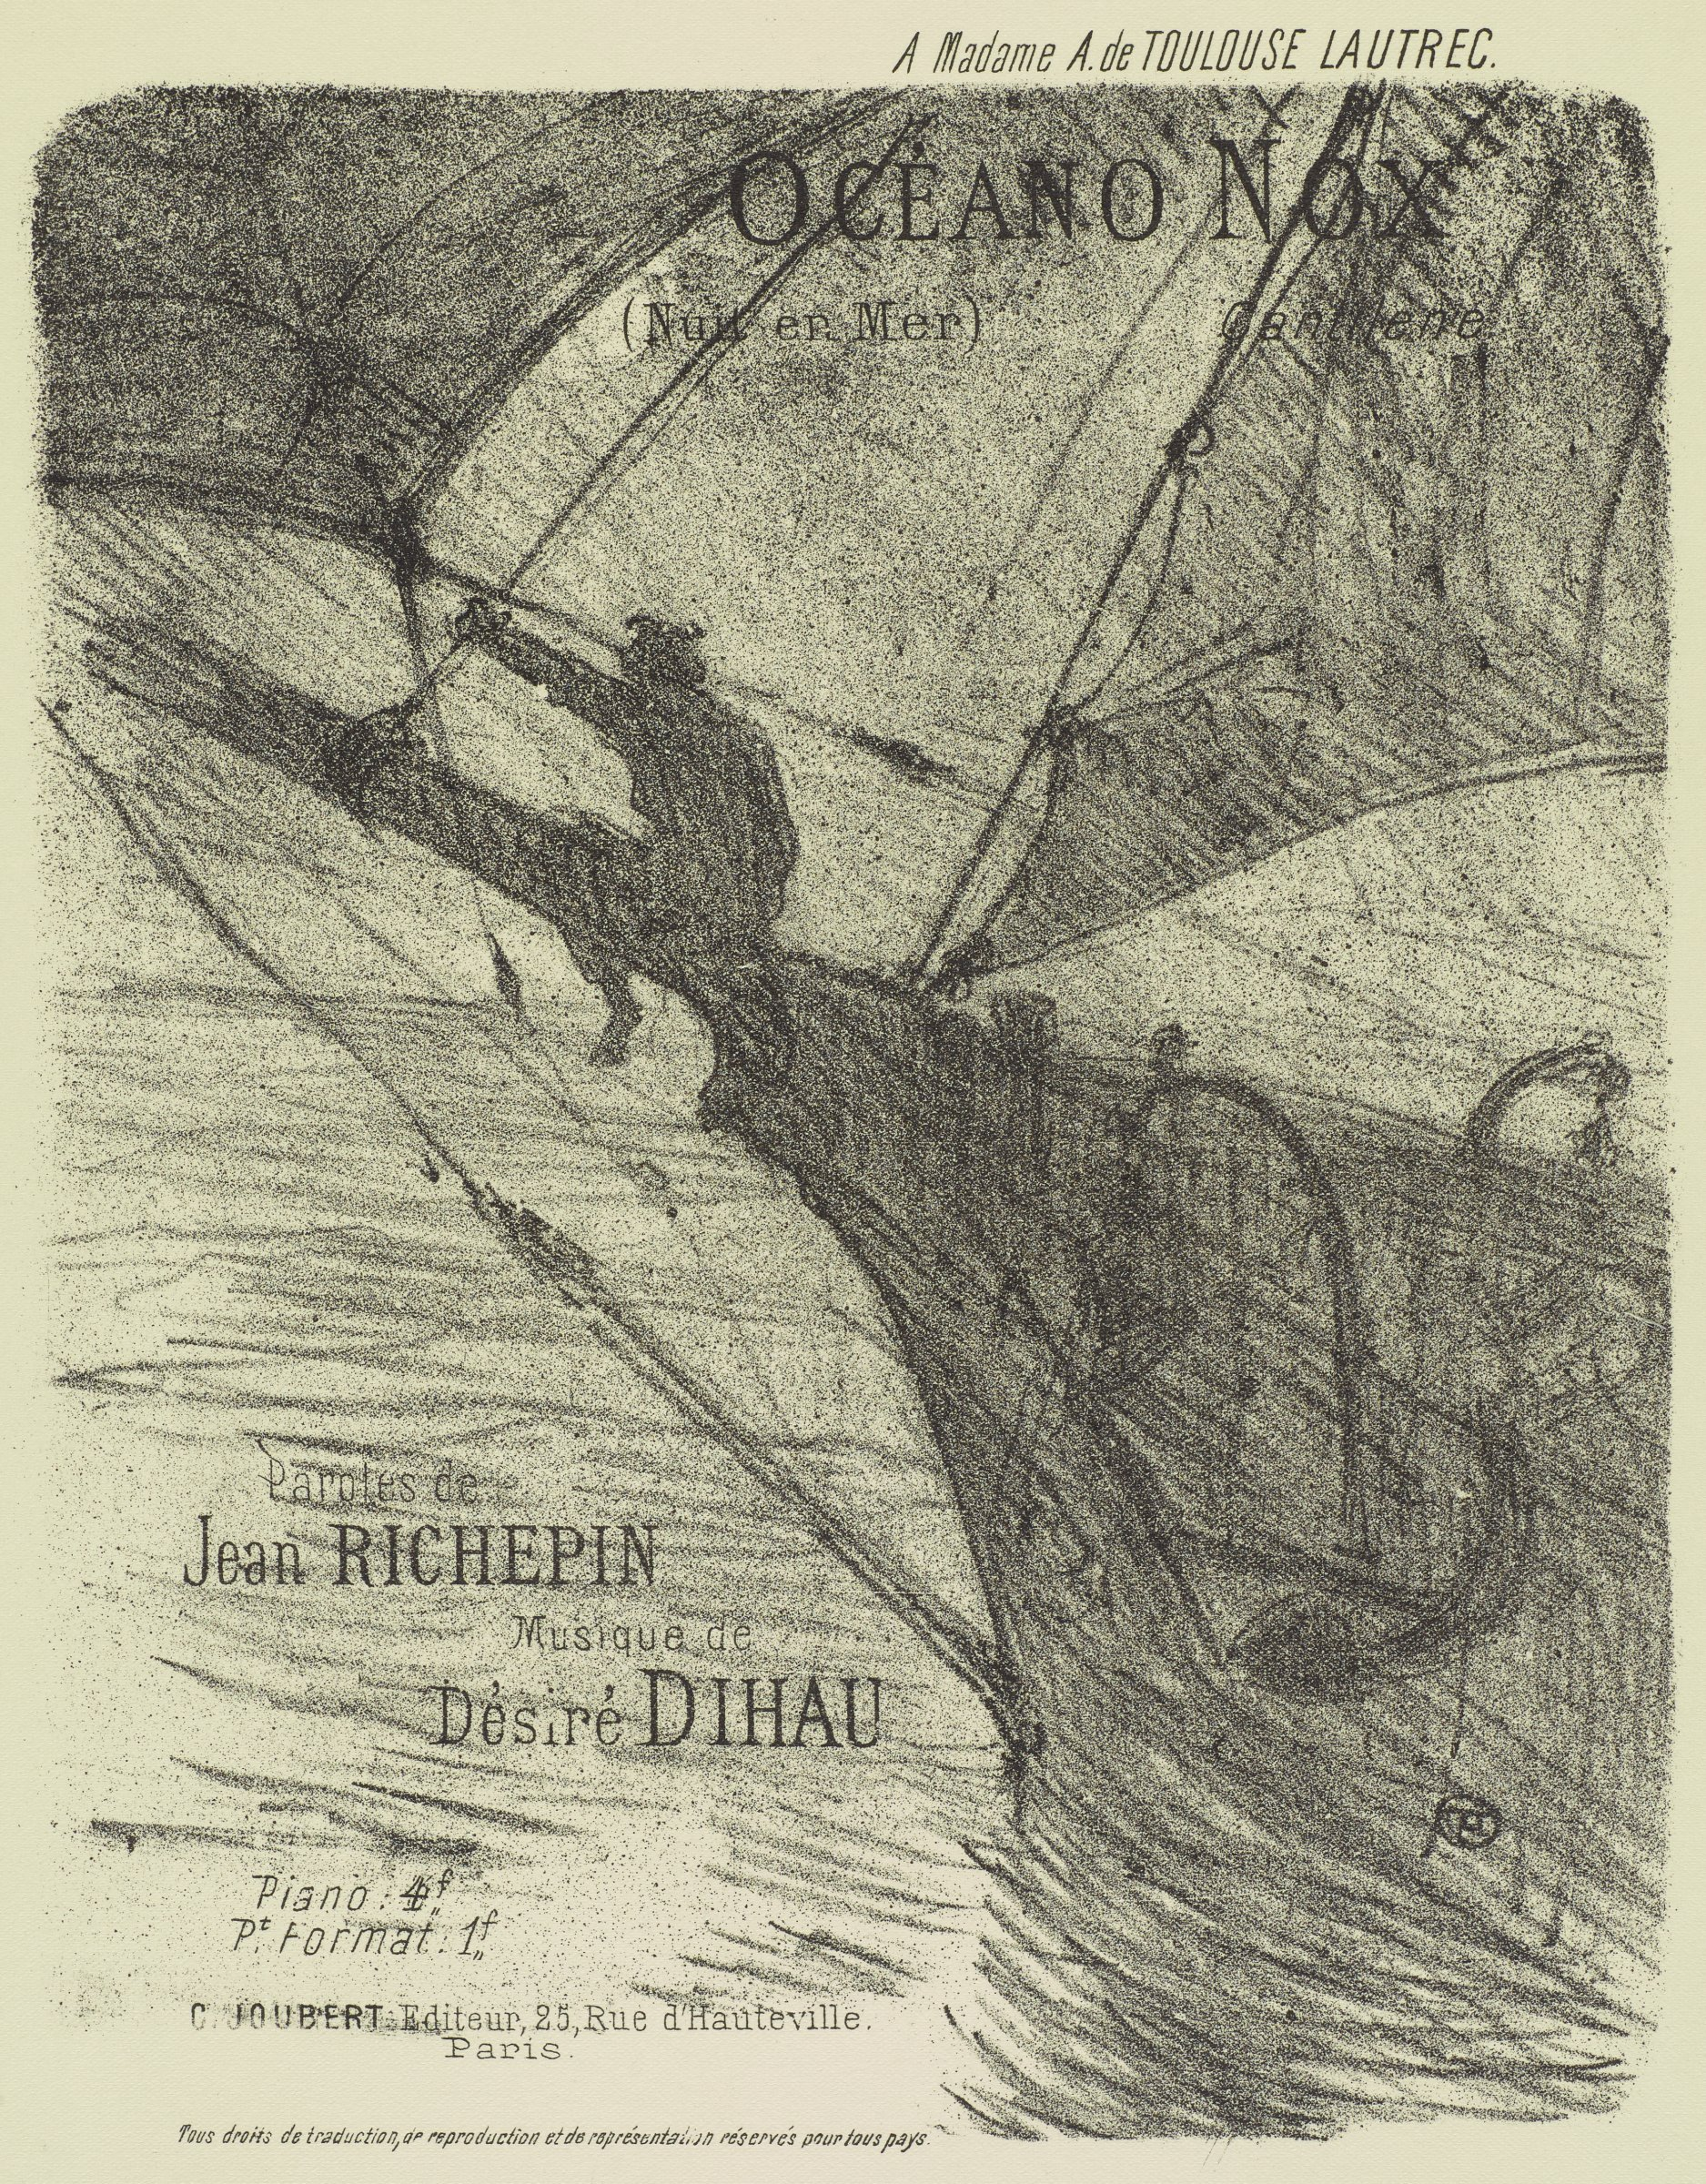 A figure sits on the front of a ship with his back toward the viewer. Various text, including the title, is printed across the composition.